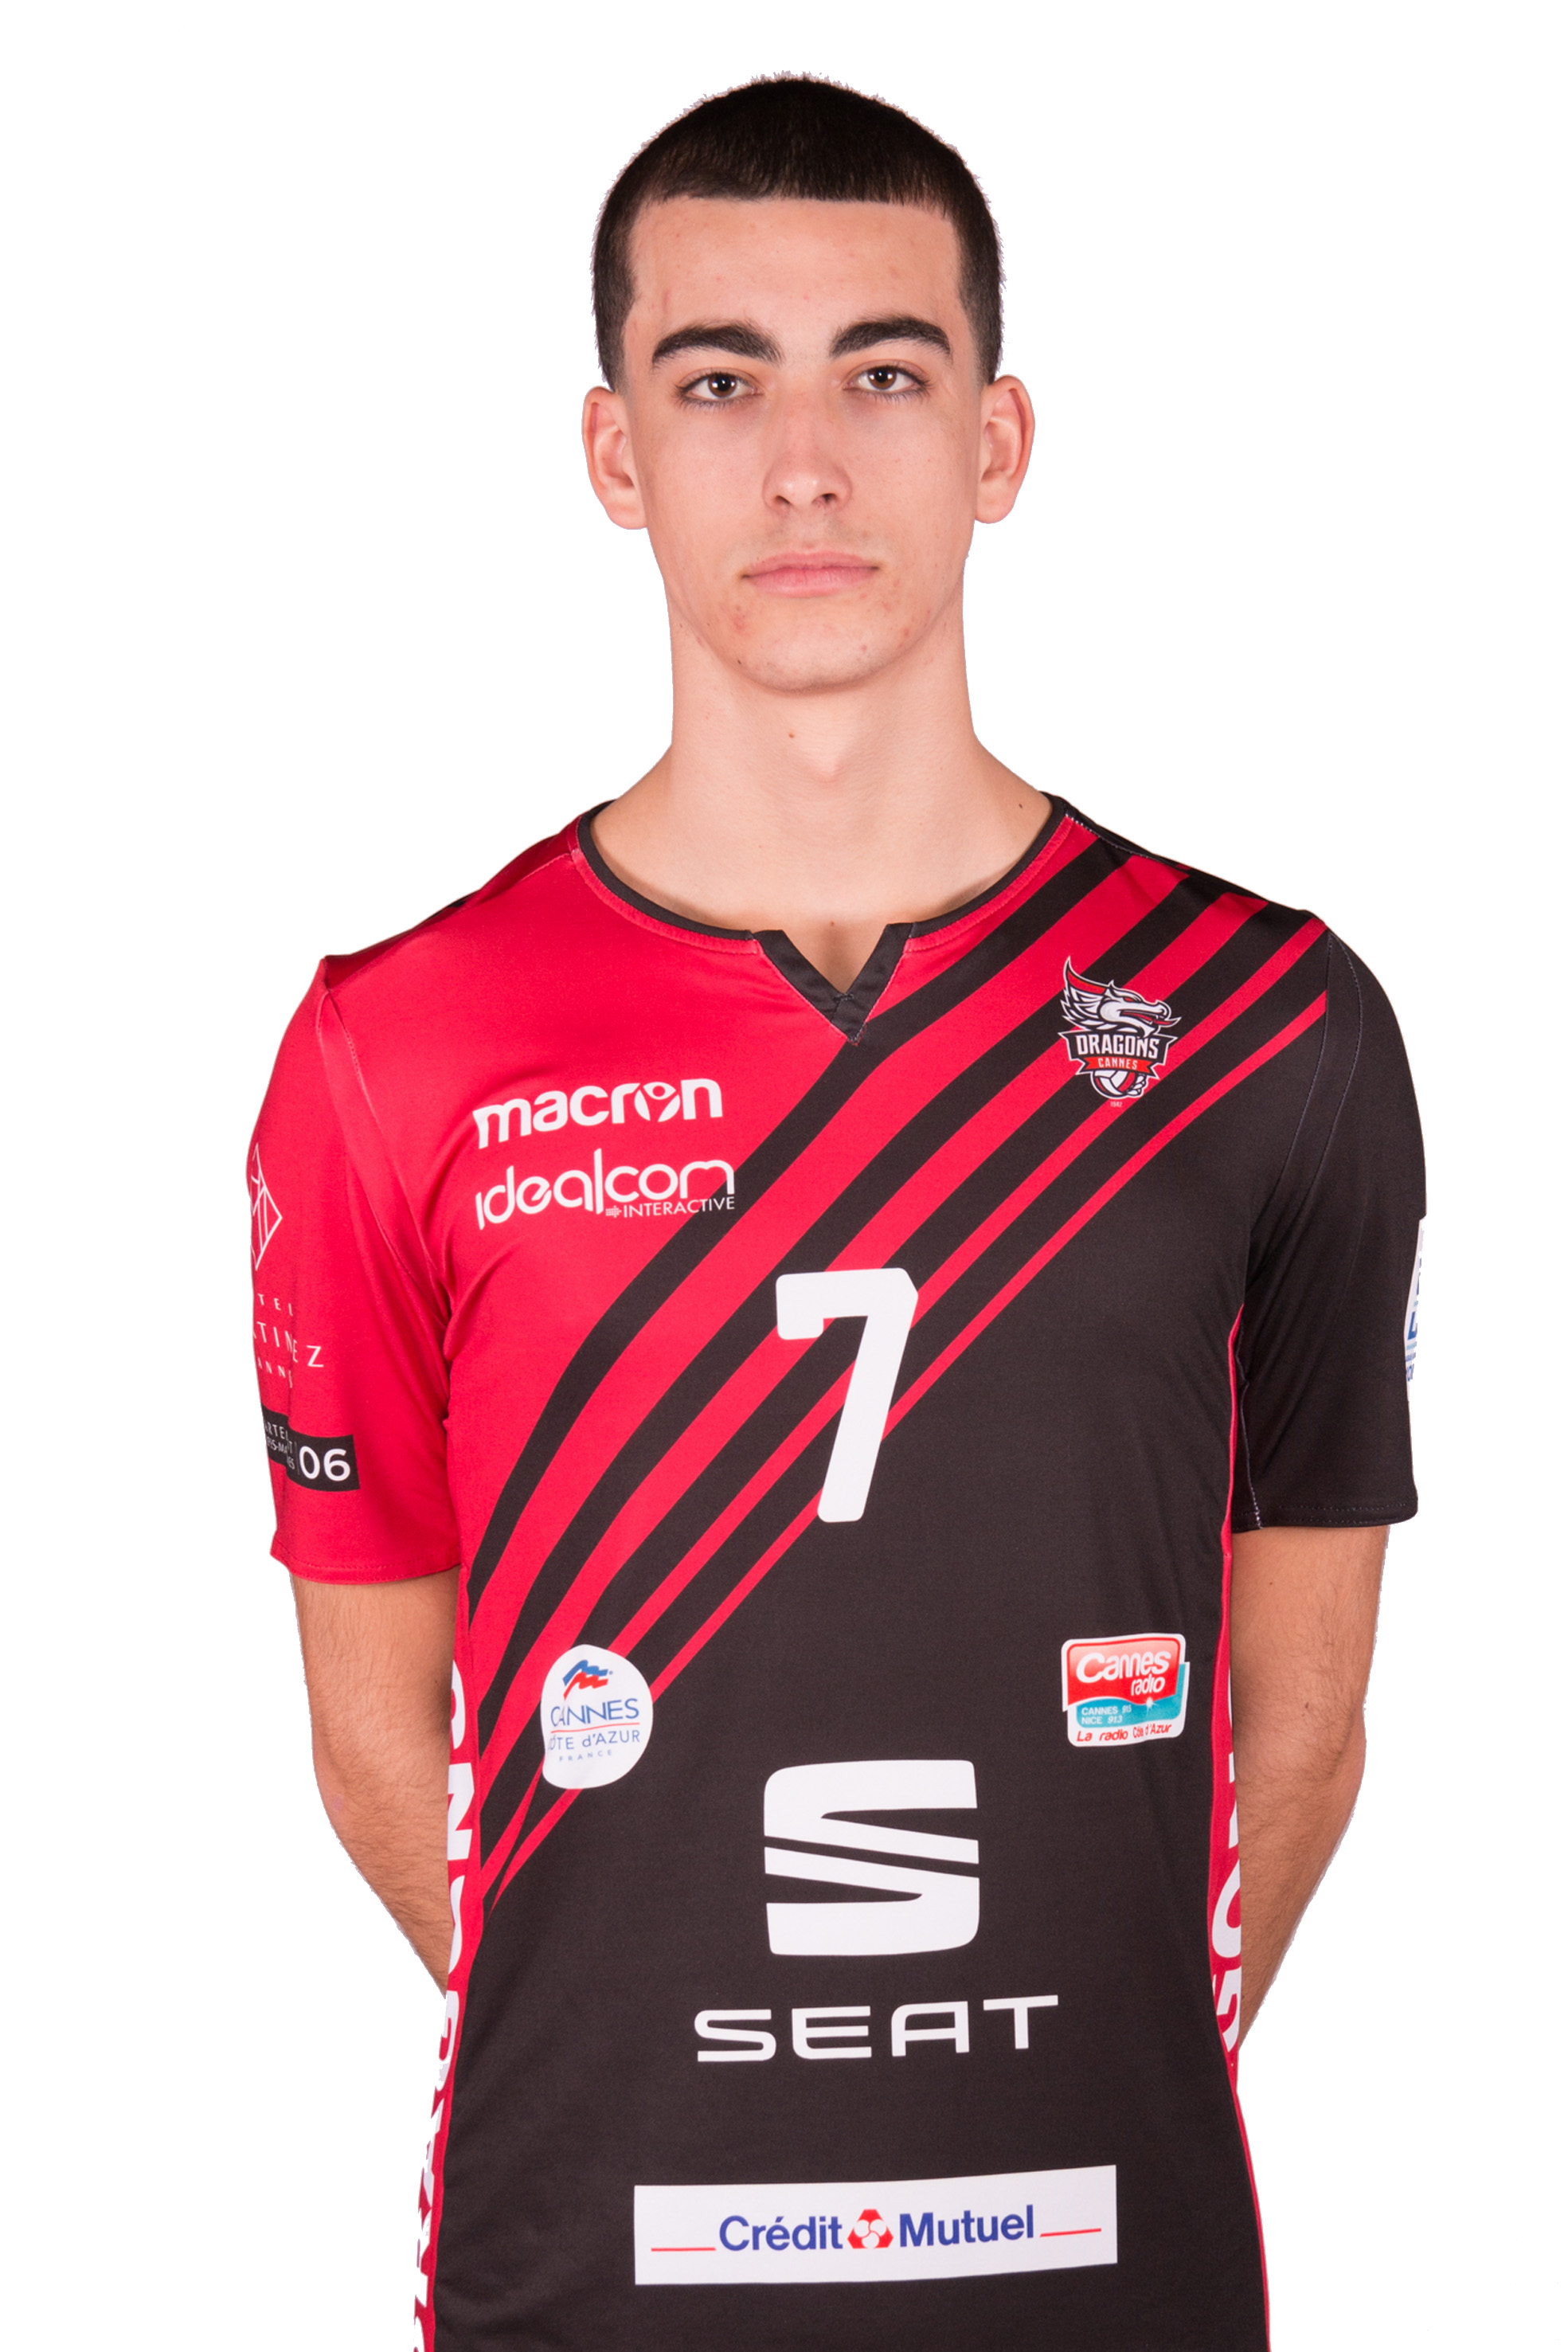 https://www.ascannesvolley.com/wp-content/uploads/2018/12/SchalkN2.jpg